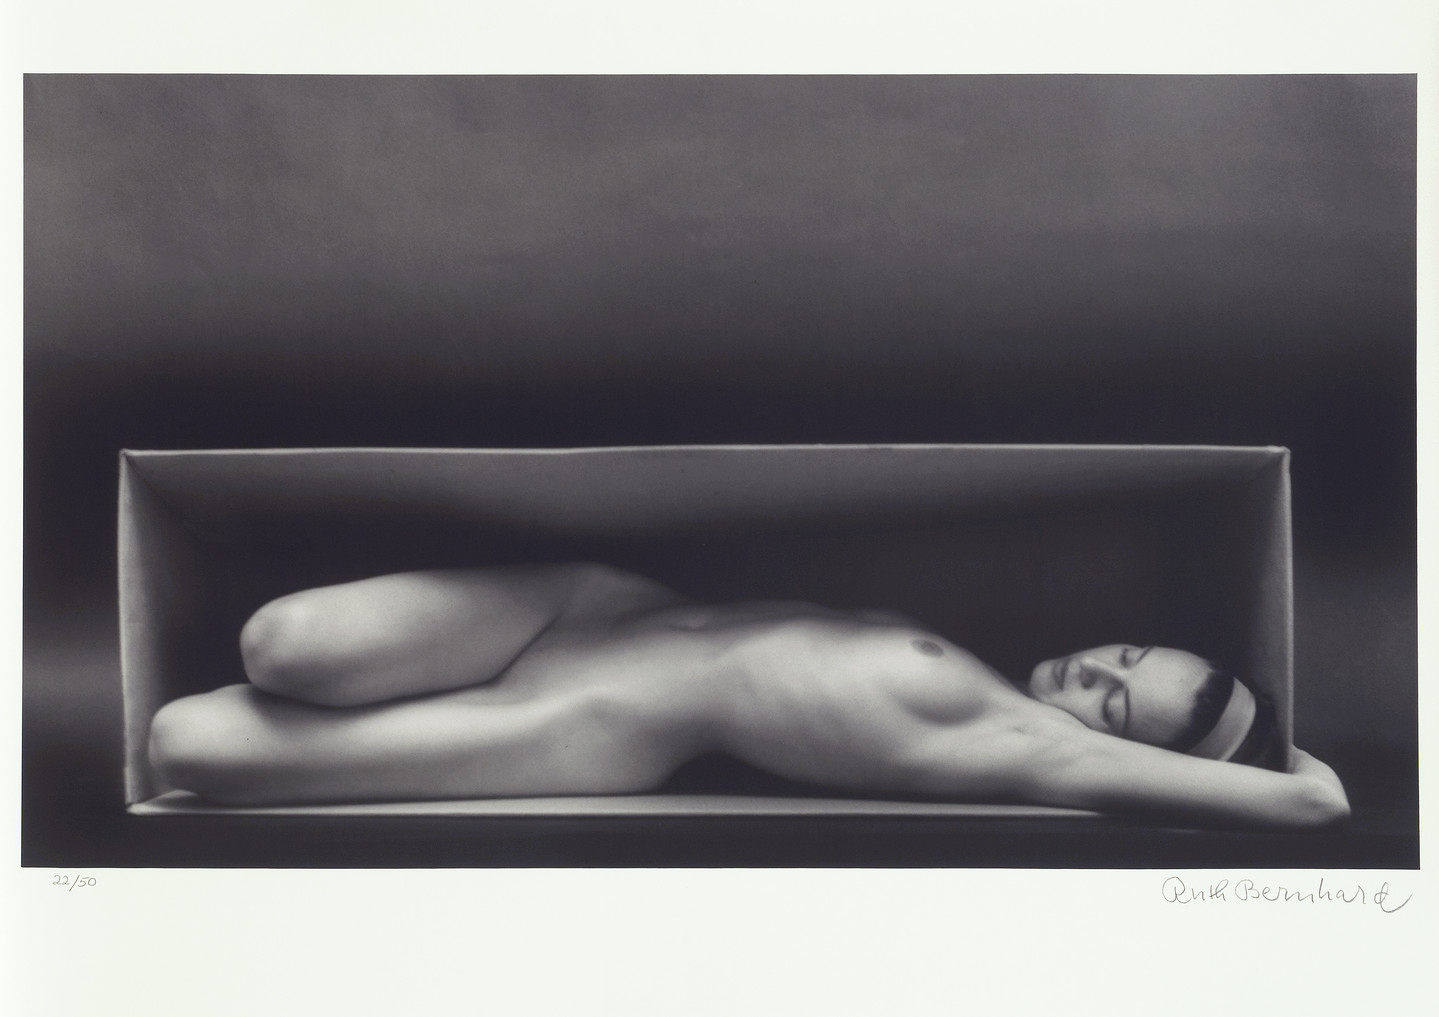 A black-and-white photo of a nude light-skinned woman laying inside the horizontal opening of a box . Her legs are bent at the knees and facing right while the rest of her body is reclined, her left breast exposed to the camera and left extended arm overhead, wrapped around the side of the box. She looks relaxed, with closed eyes and wears a headband.